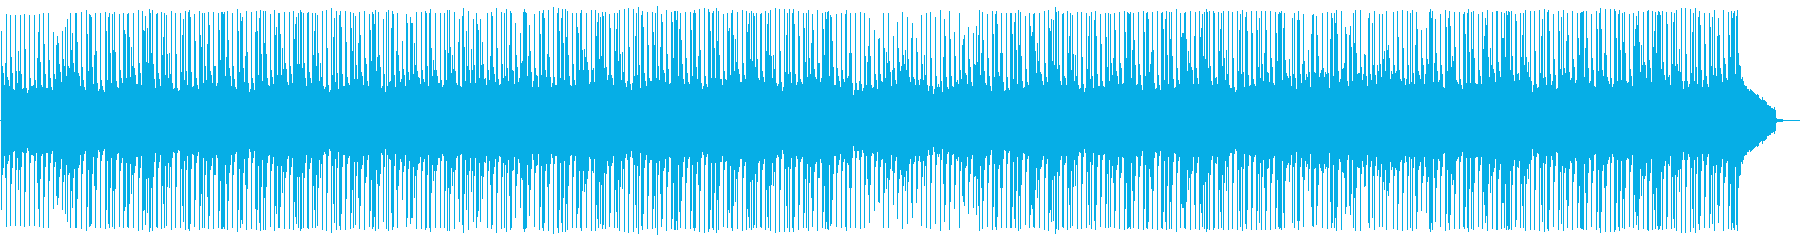 A heartwarming BGM with the image of agriculture and fields's reproduced waveform